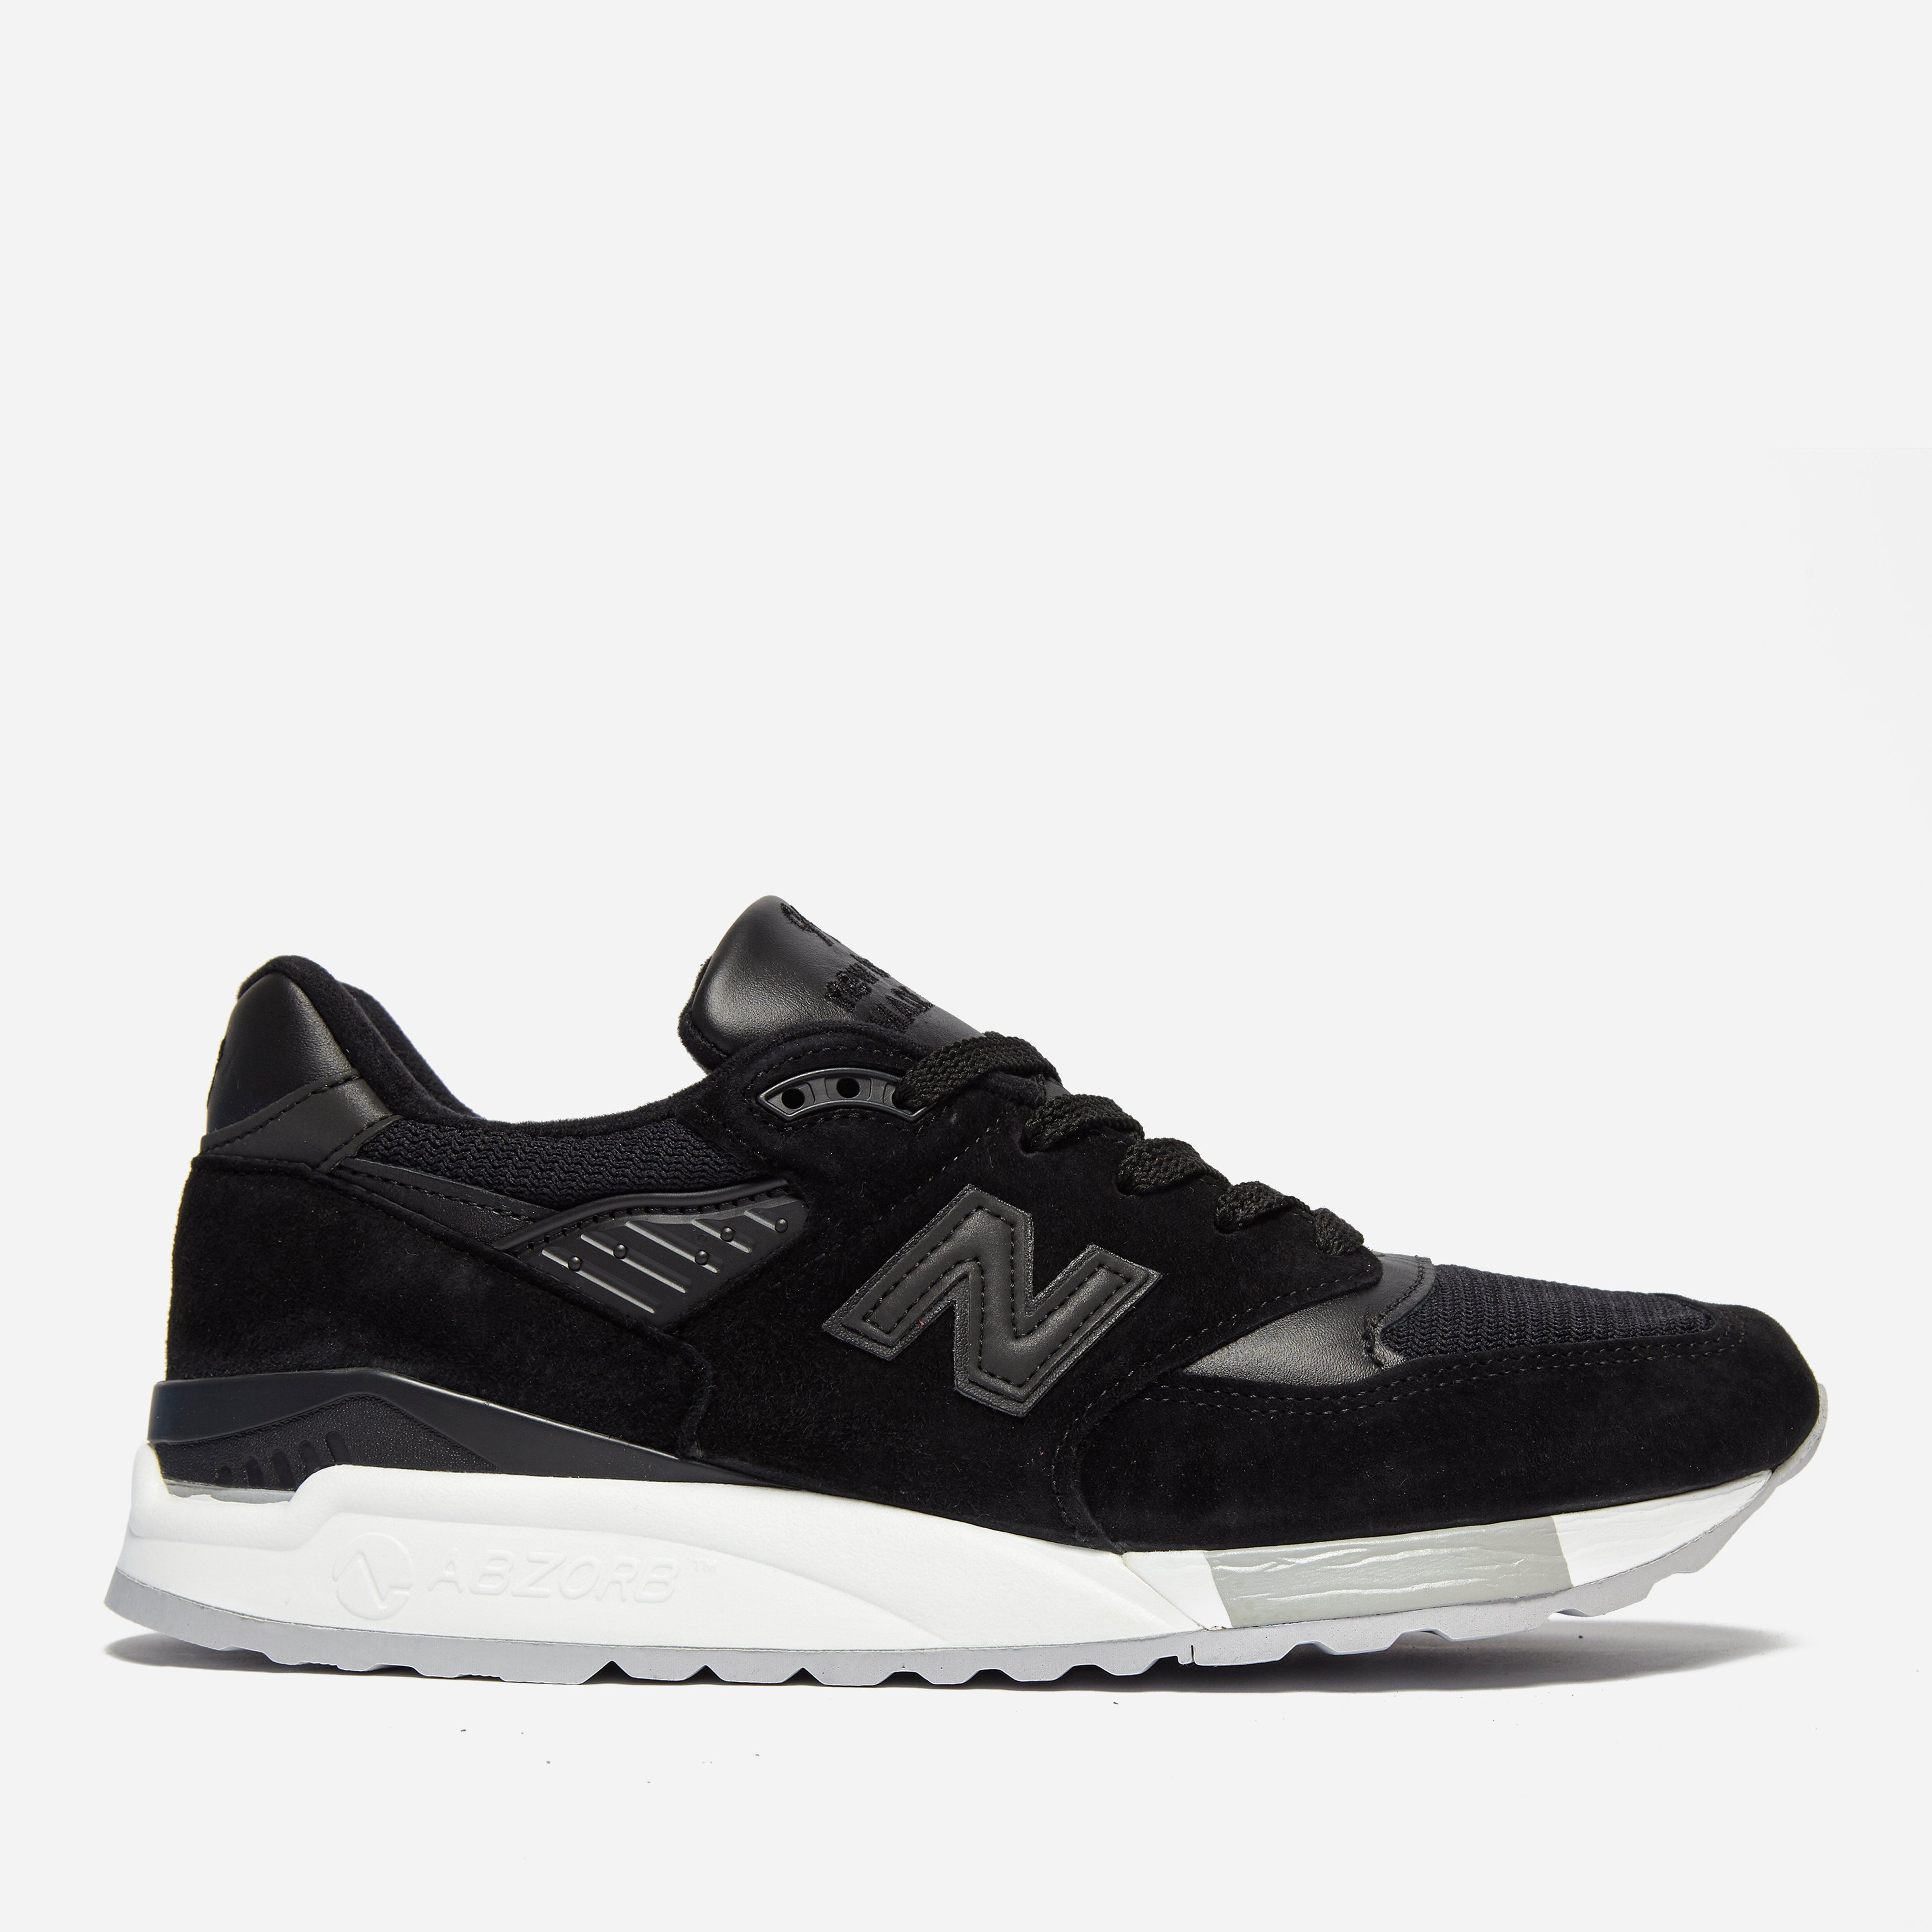 New Balance M 998 NJ Made in USA